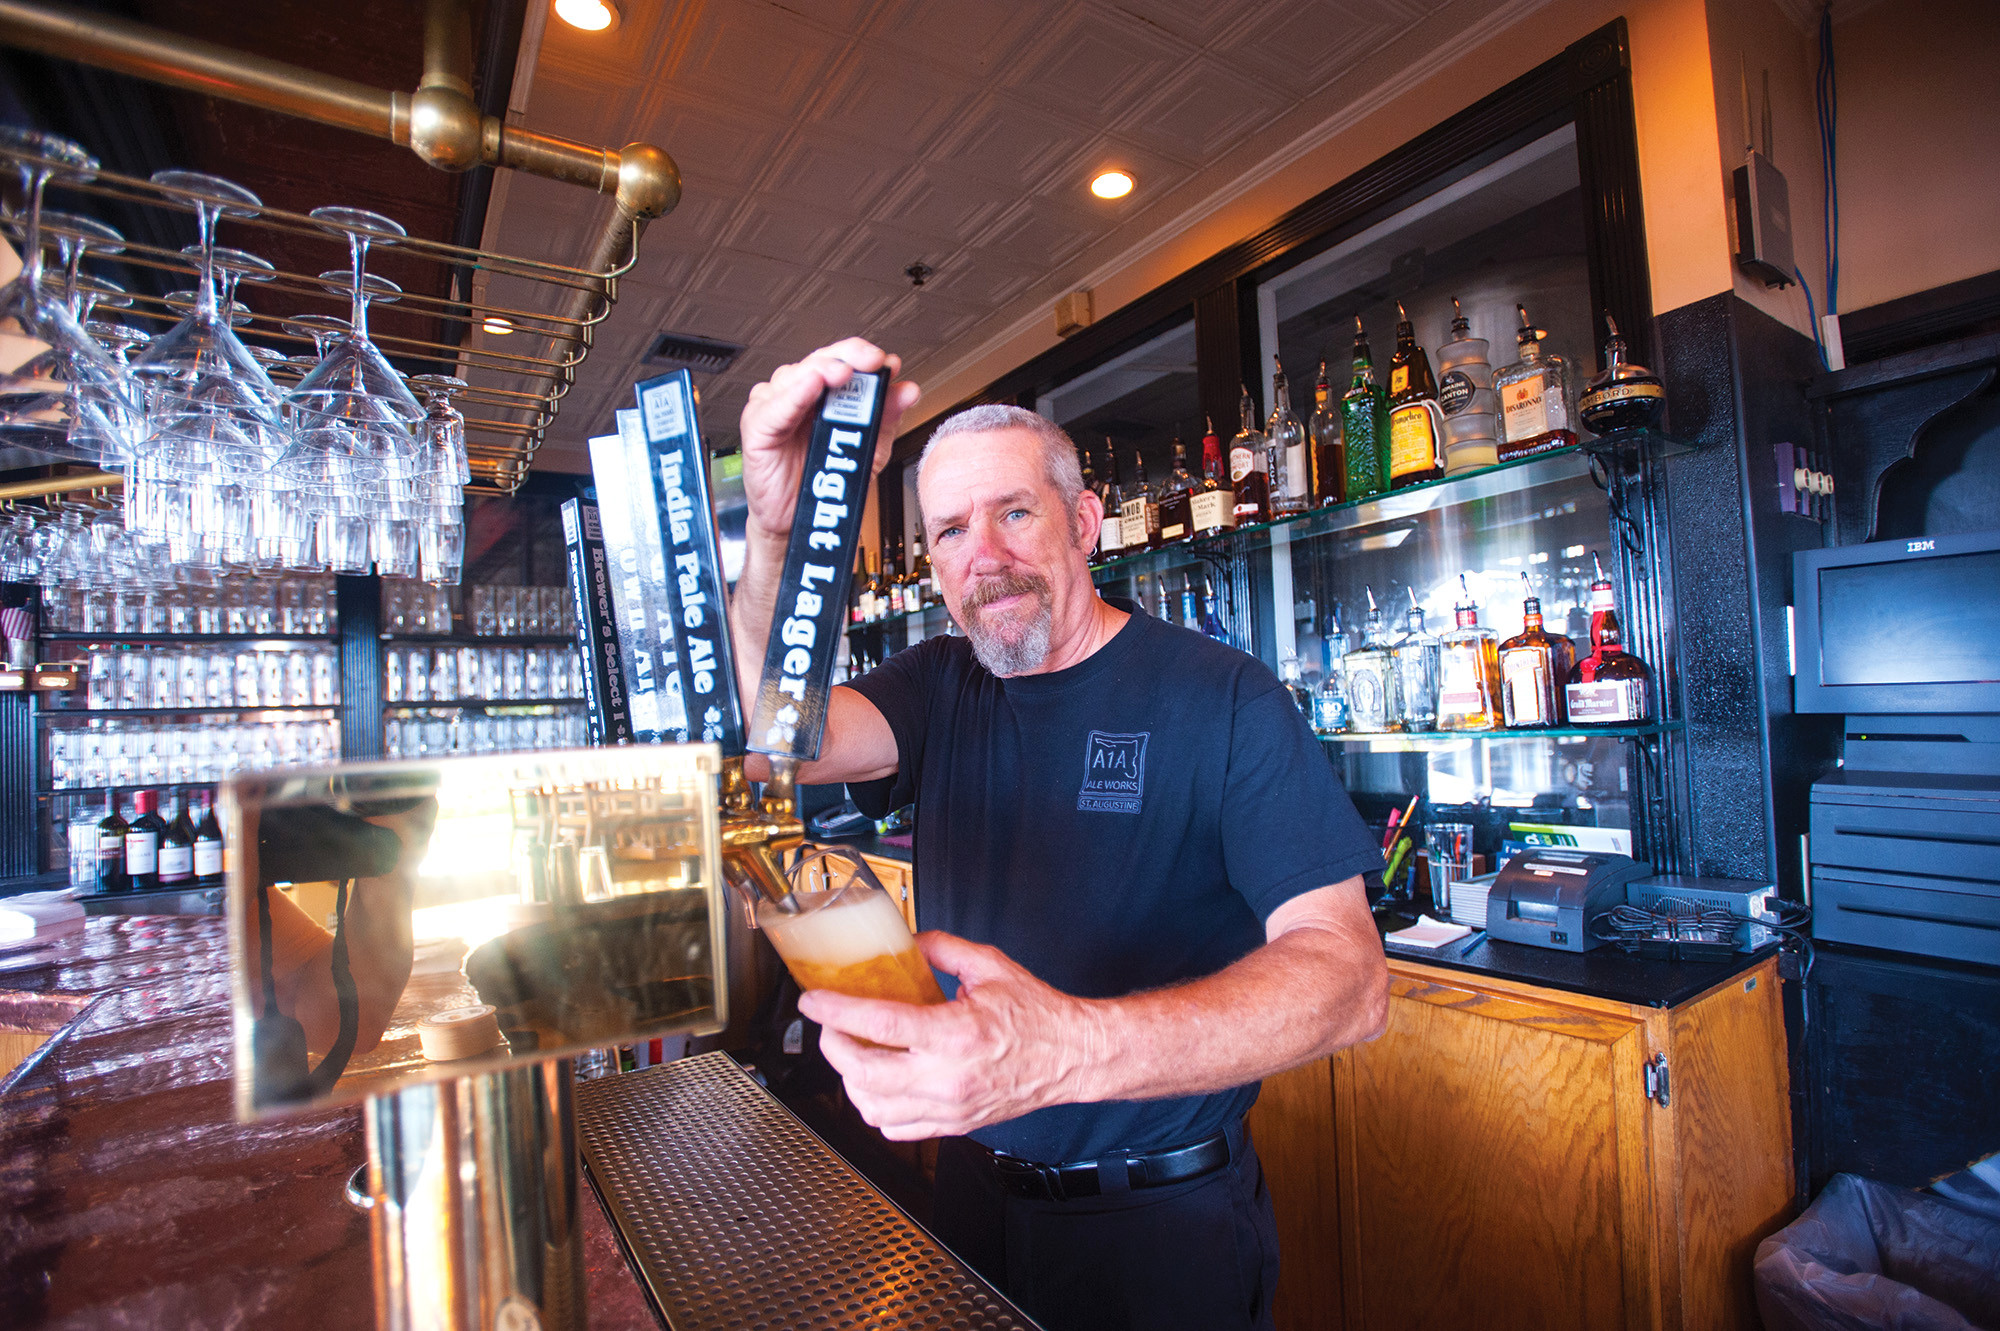 Dale Lloyd, A1A Ale Works' long-time bartender, pours a King Street Light Lager, perfect after a hot day in the Oldest City.